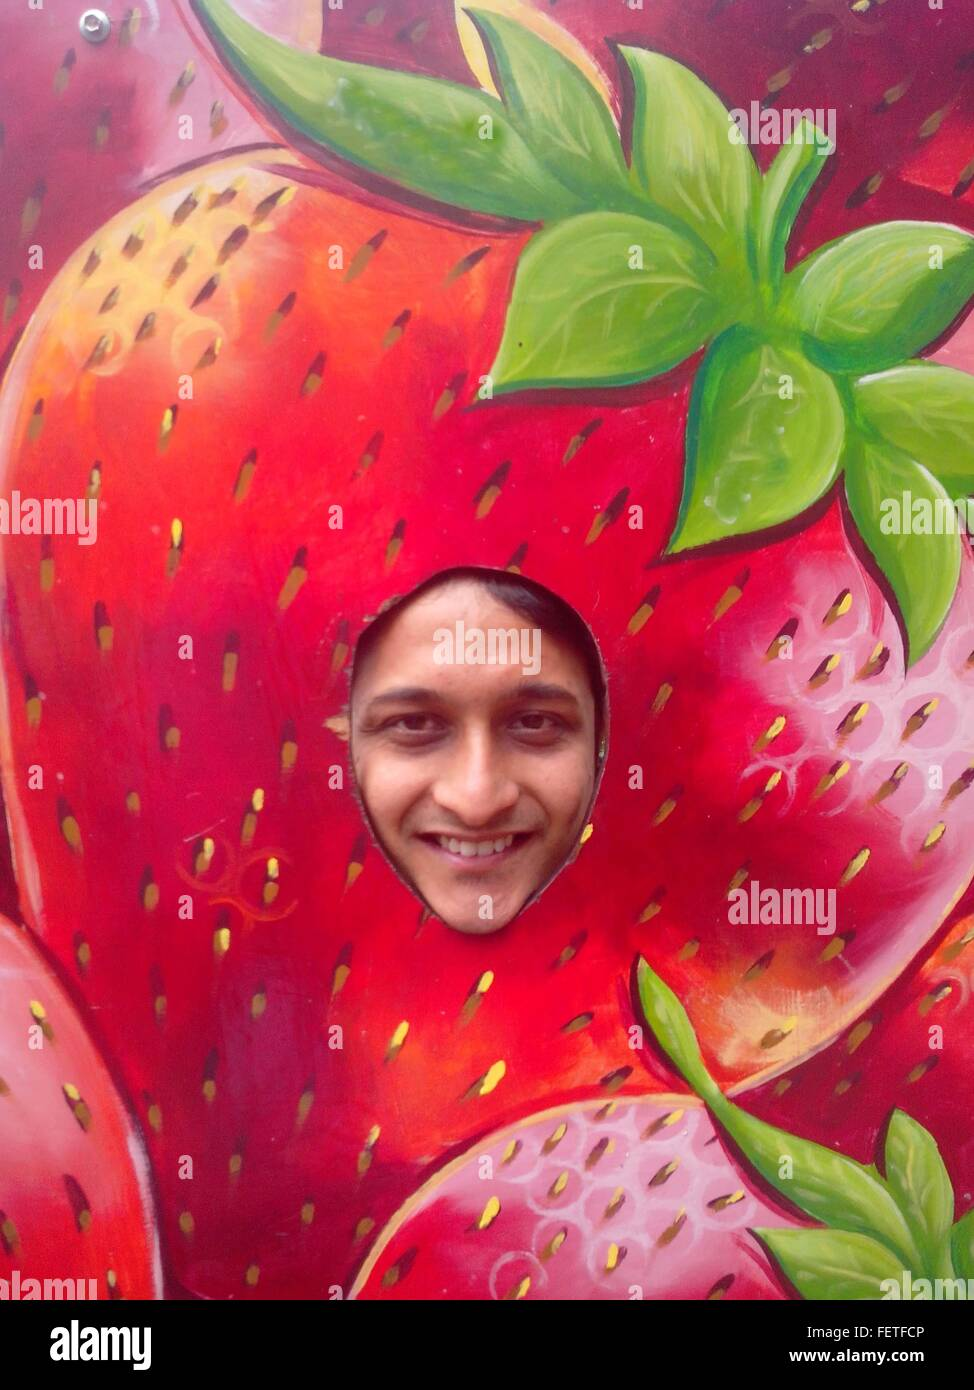 Portrait Of Man In Strawberry-Shaped Decoration - Stock Image